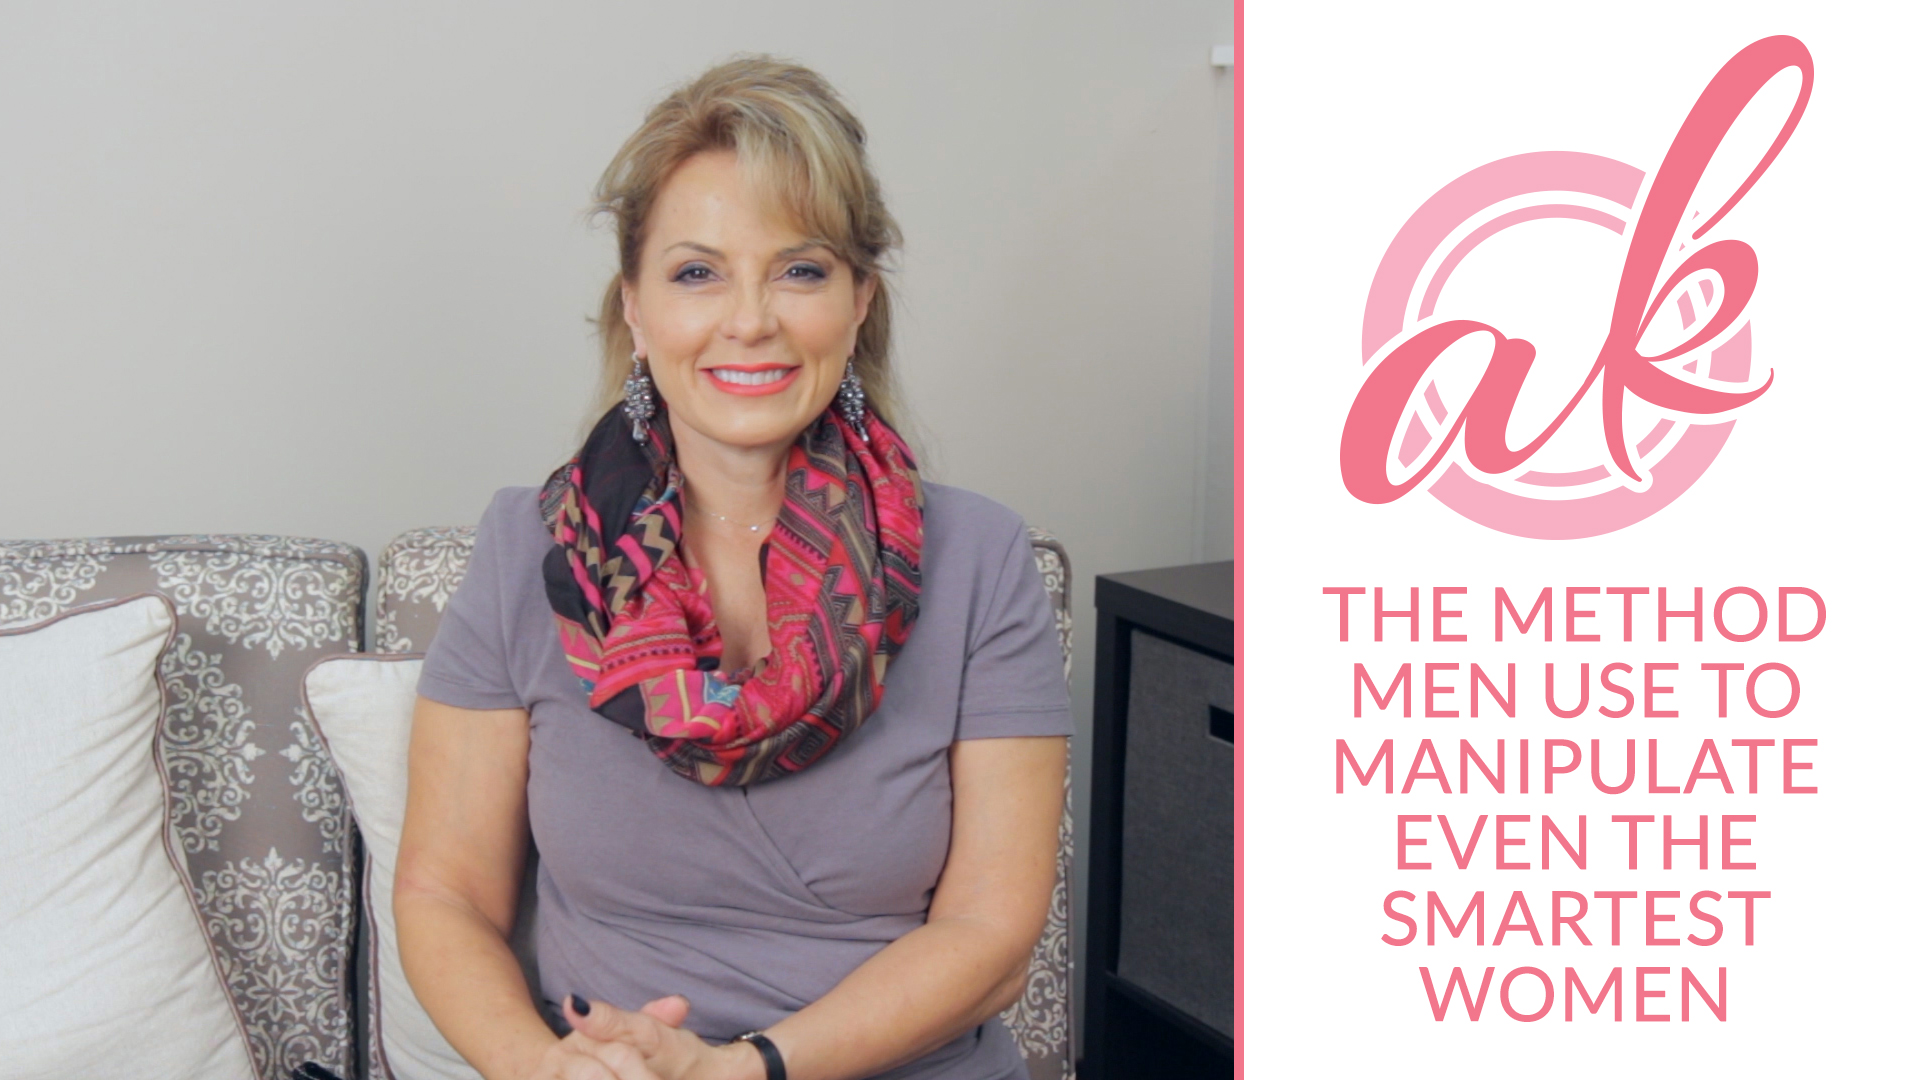 Episode 4 – The Method Men Use to Manipulate Even the Smartest Women